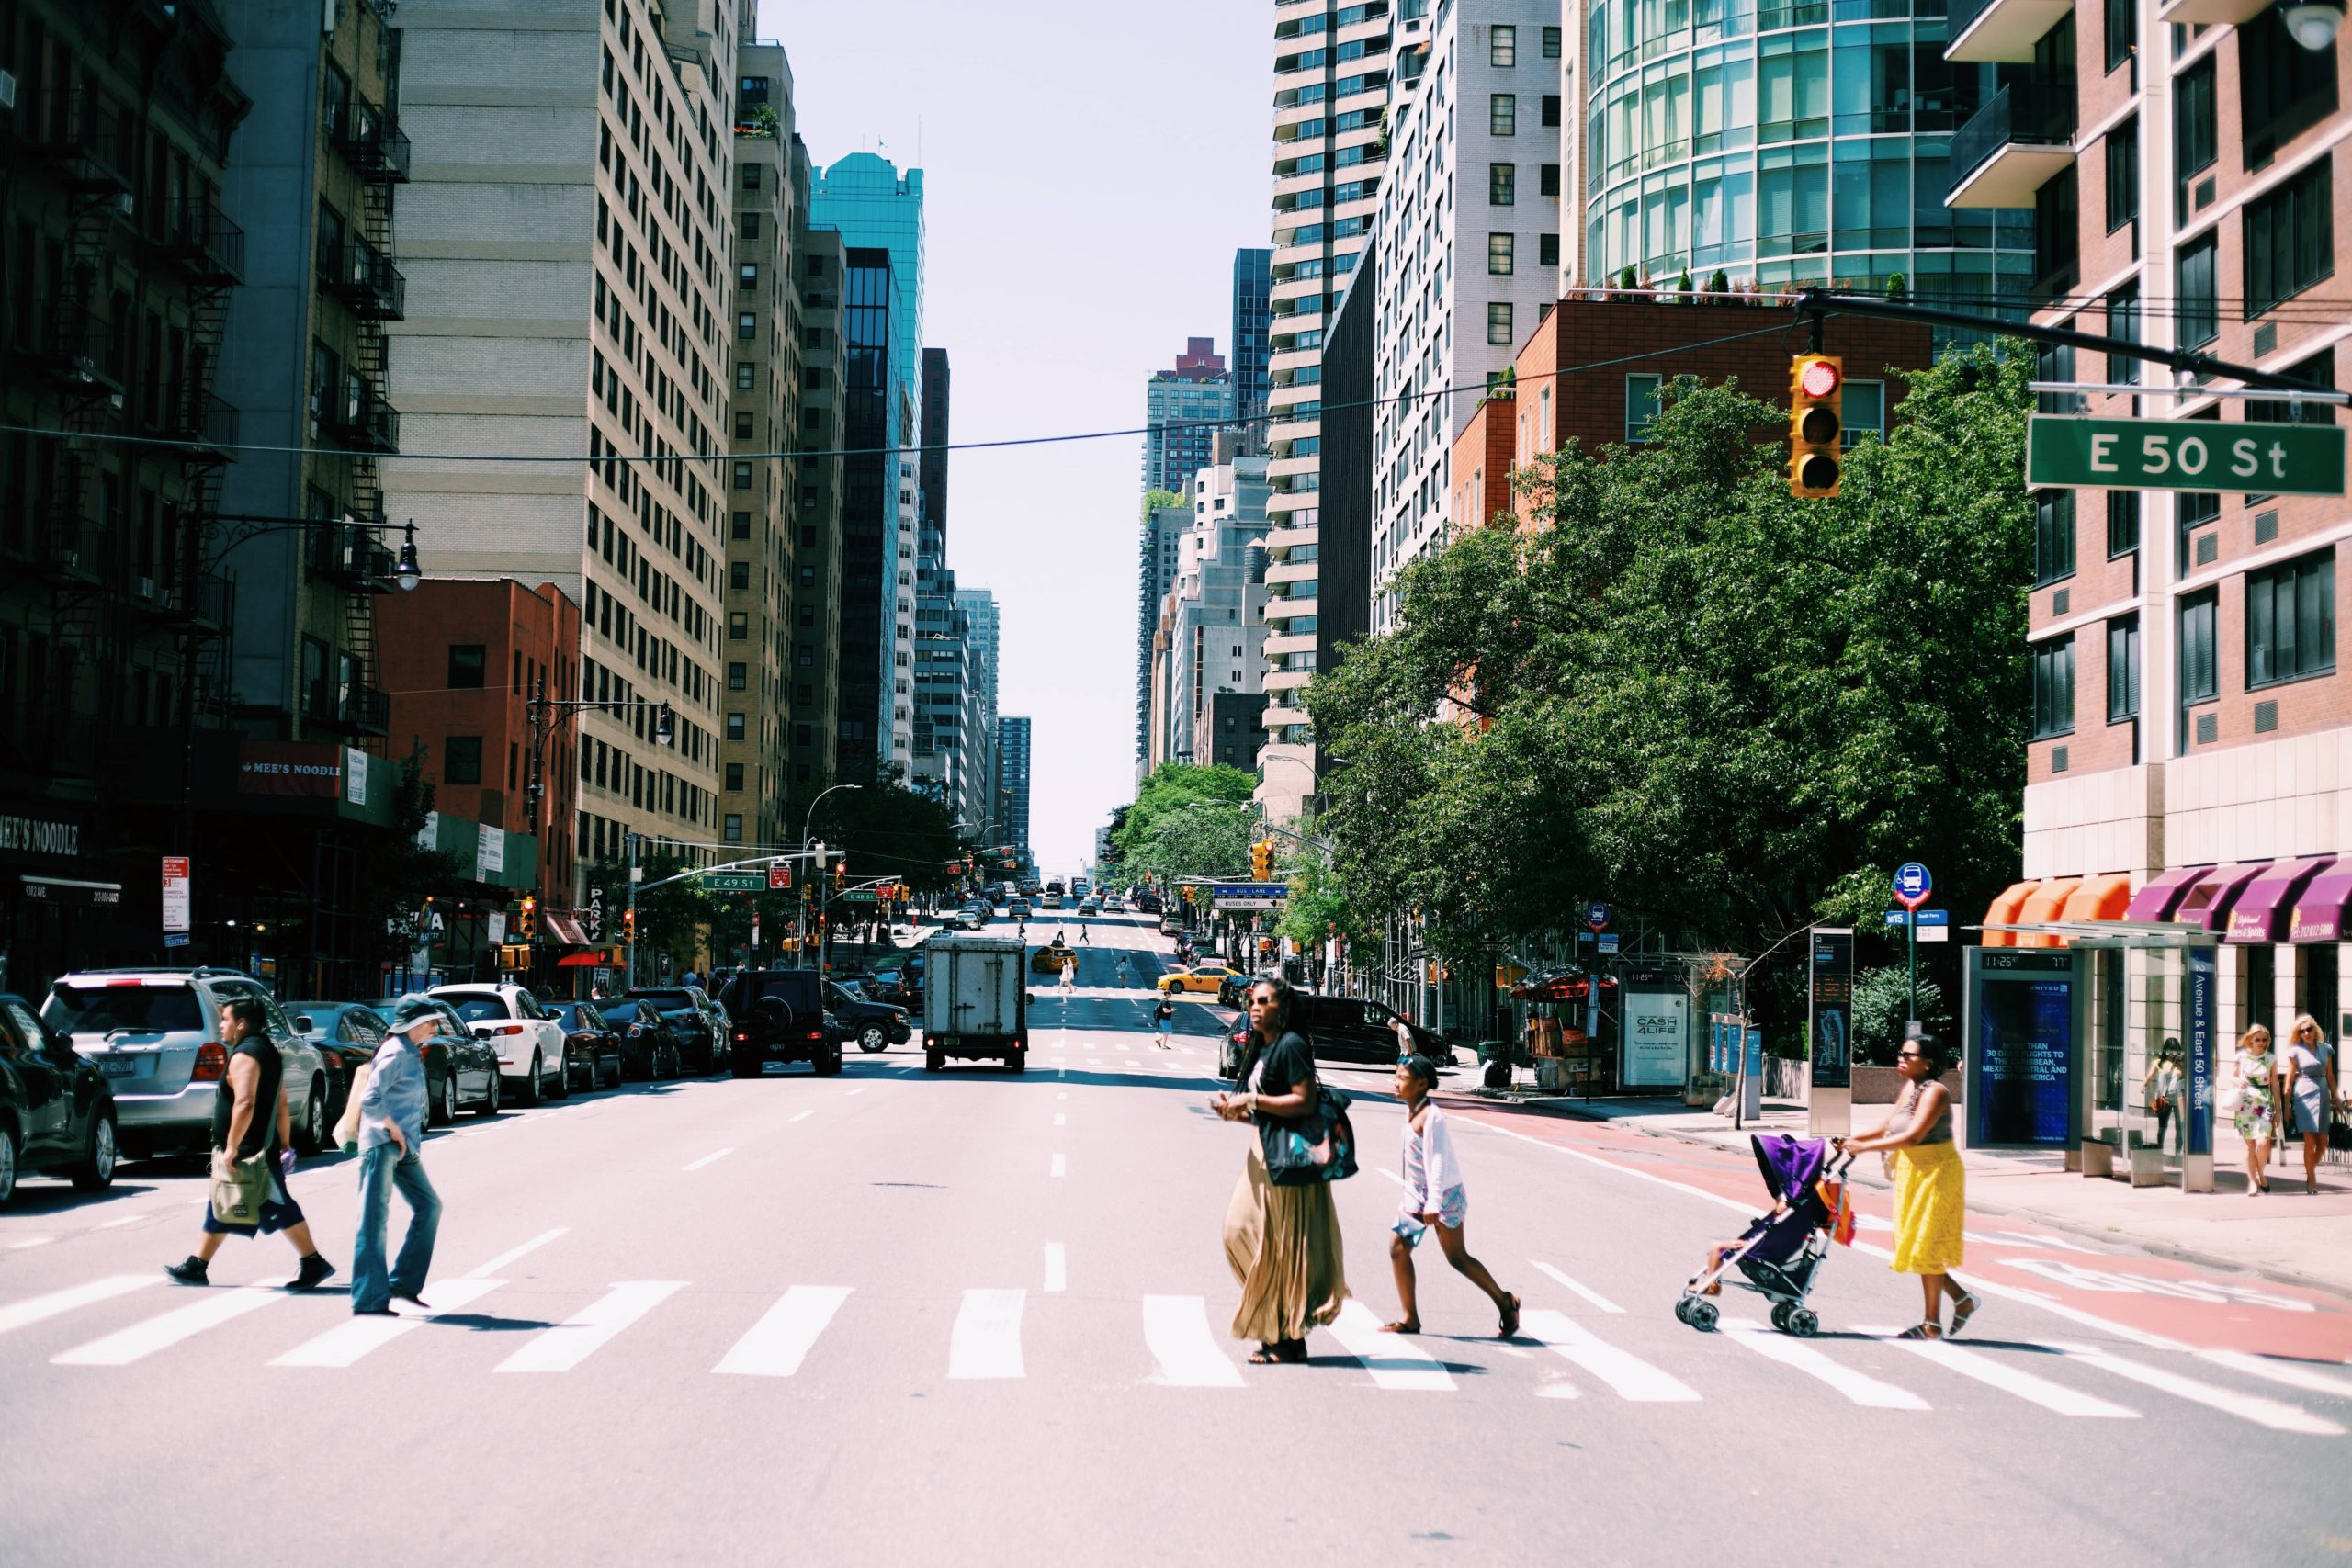 People cross the street in a city with little tree canopy.